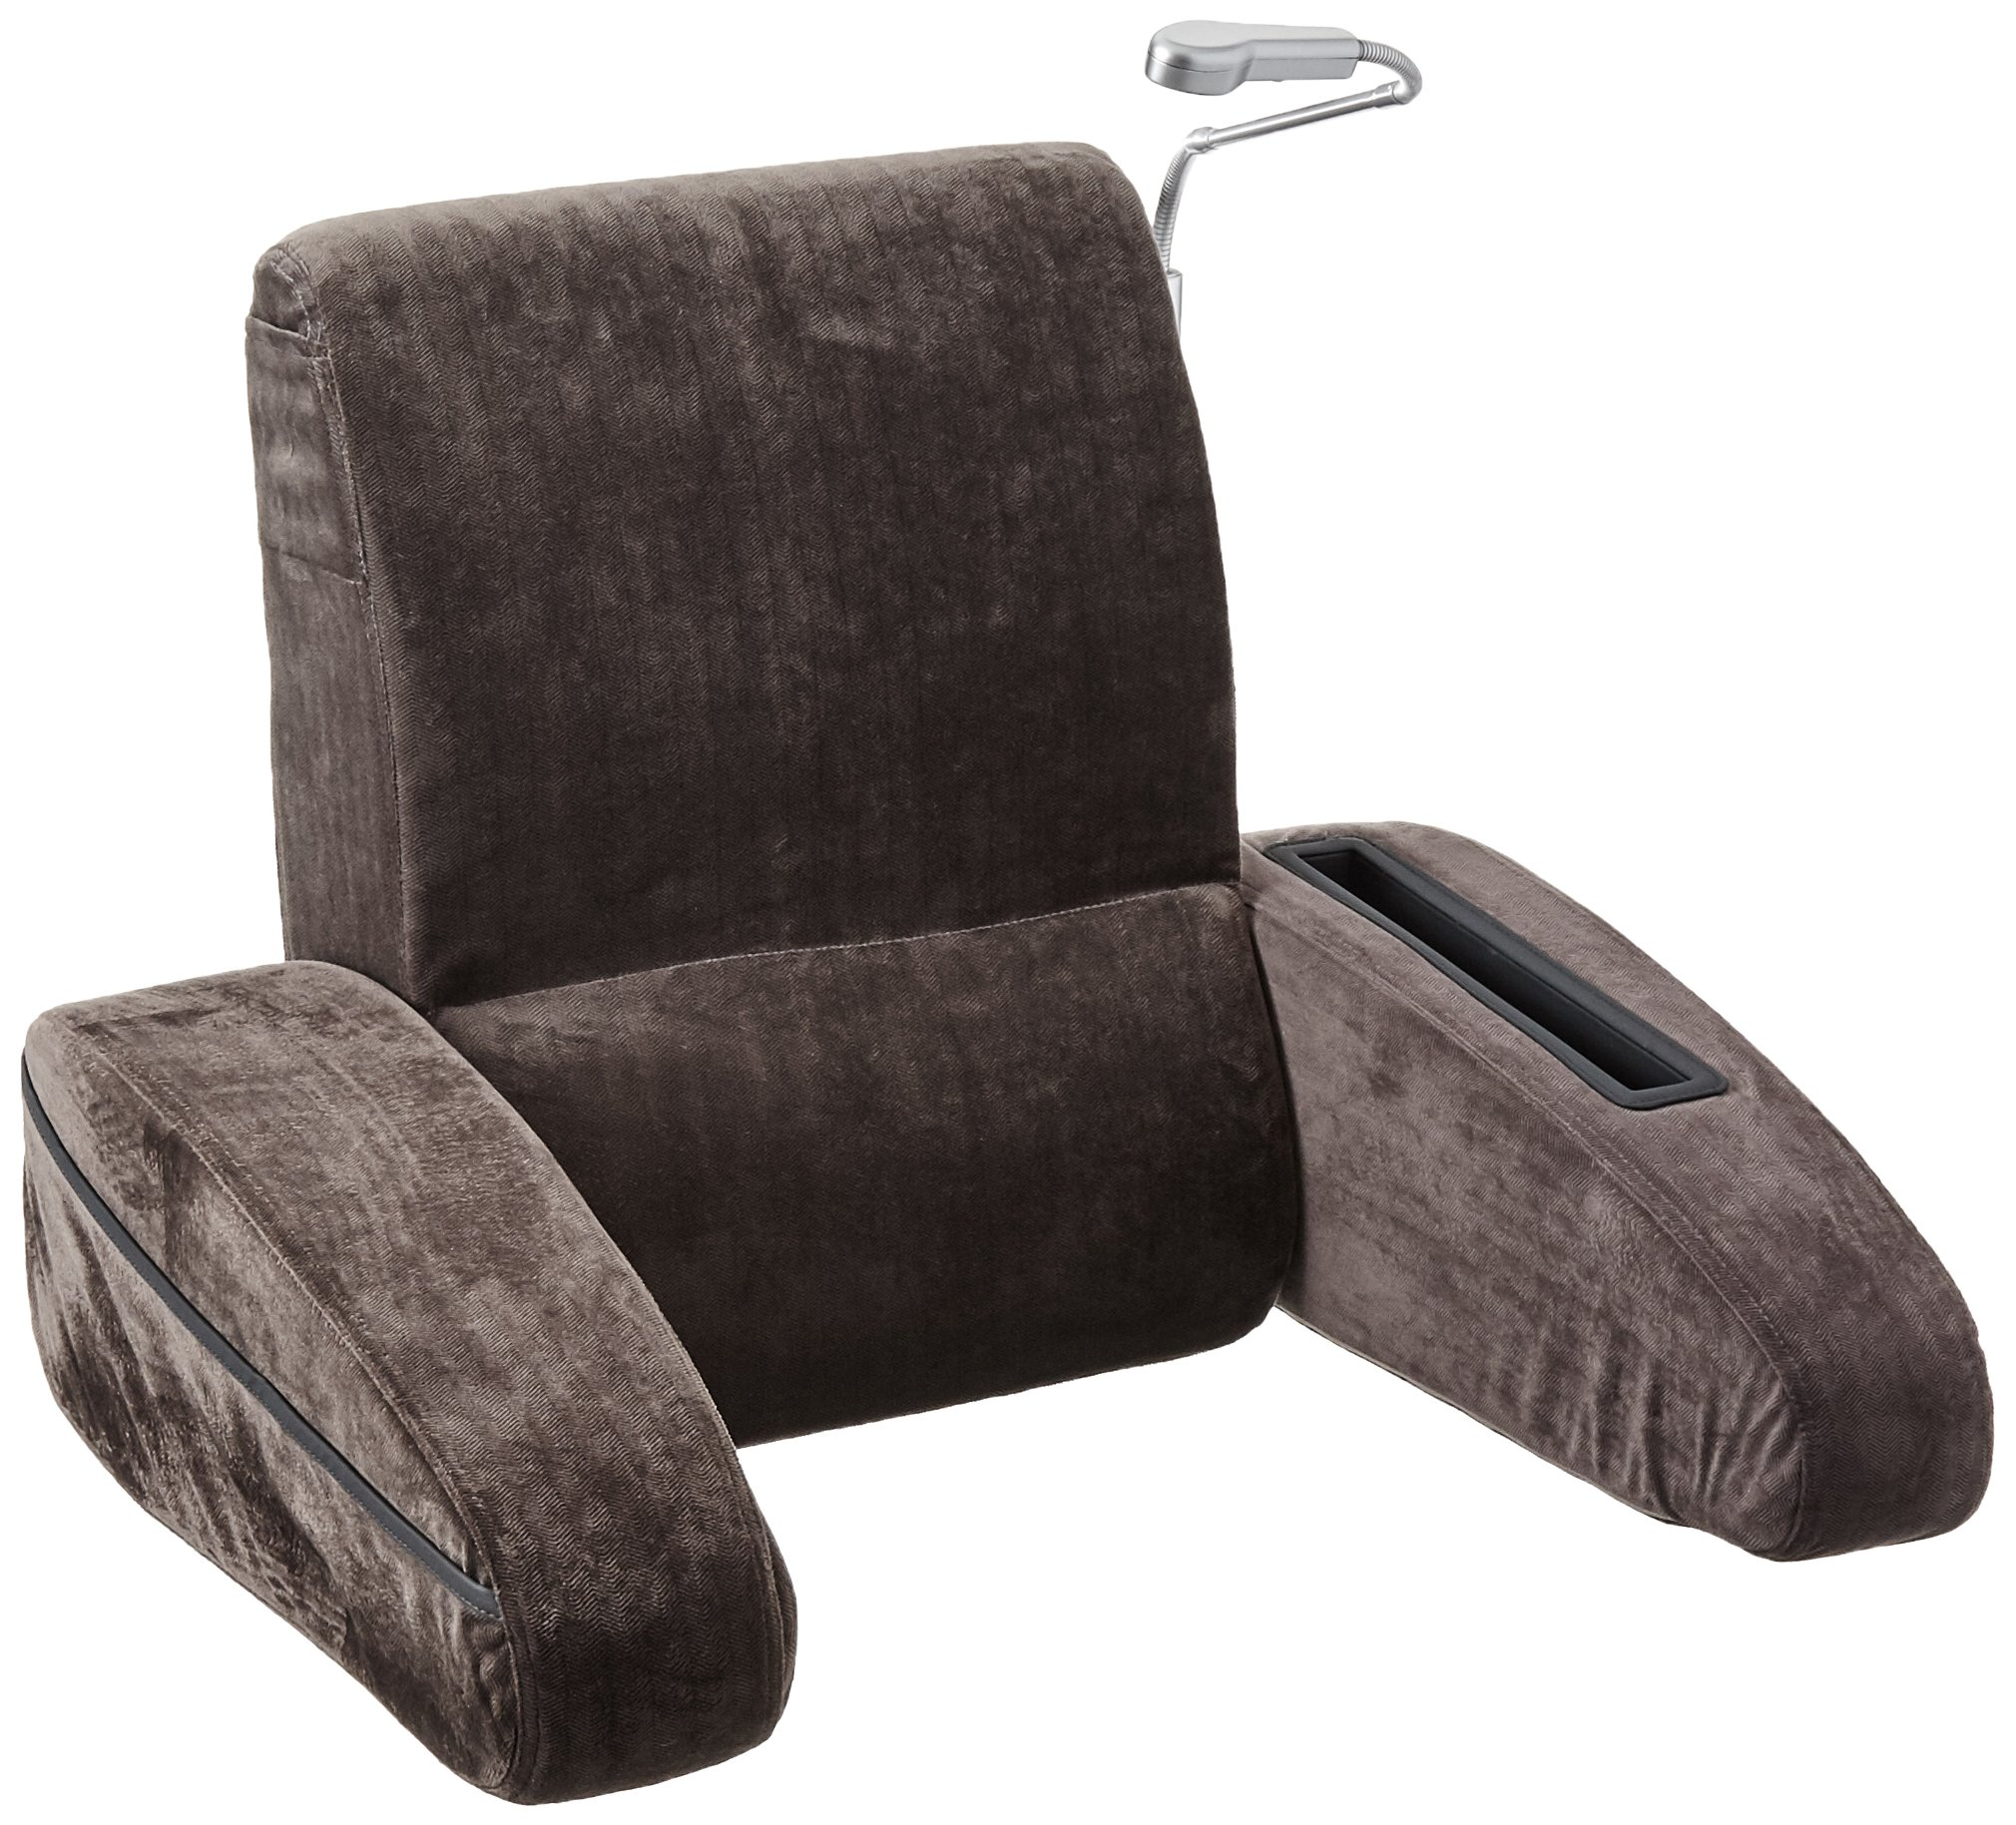 BROOKSTONE 805986 eComfort Bed Rest reading Pillow